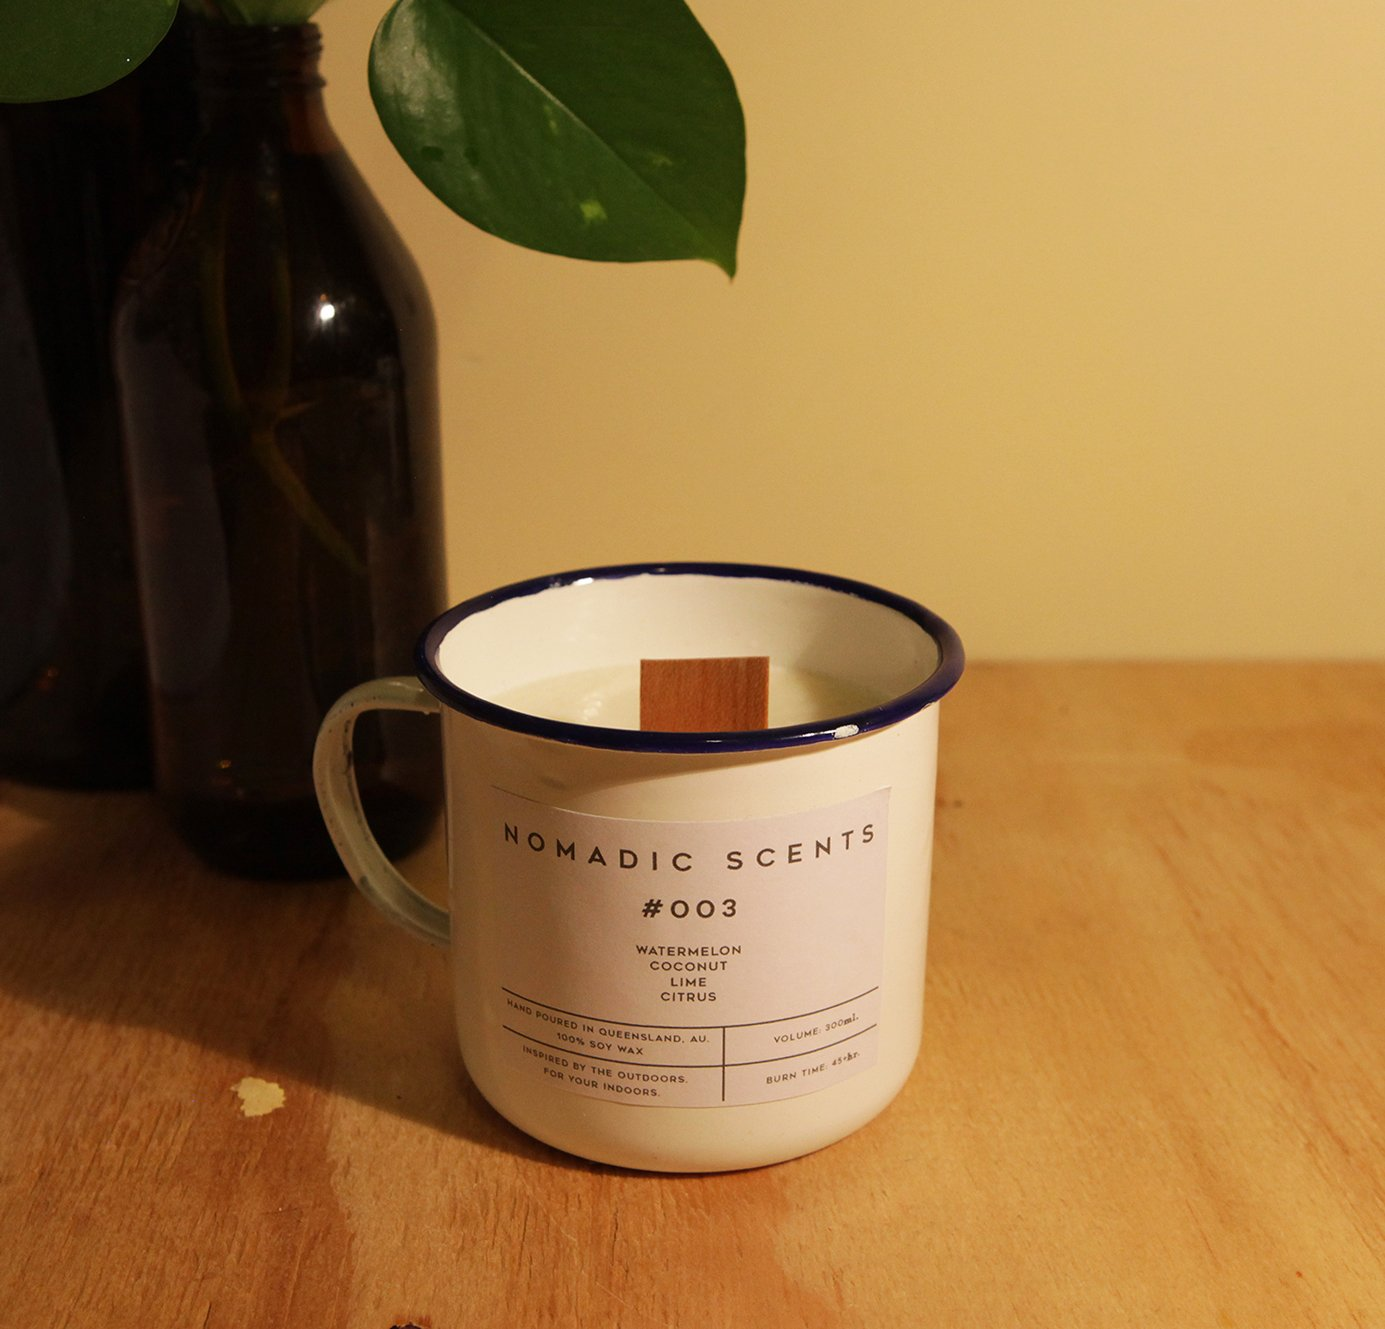 Nomadic Scents - #003 - Watermelon / Coconut / Lime / Citrus - 300ml Candle